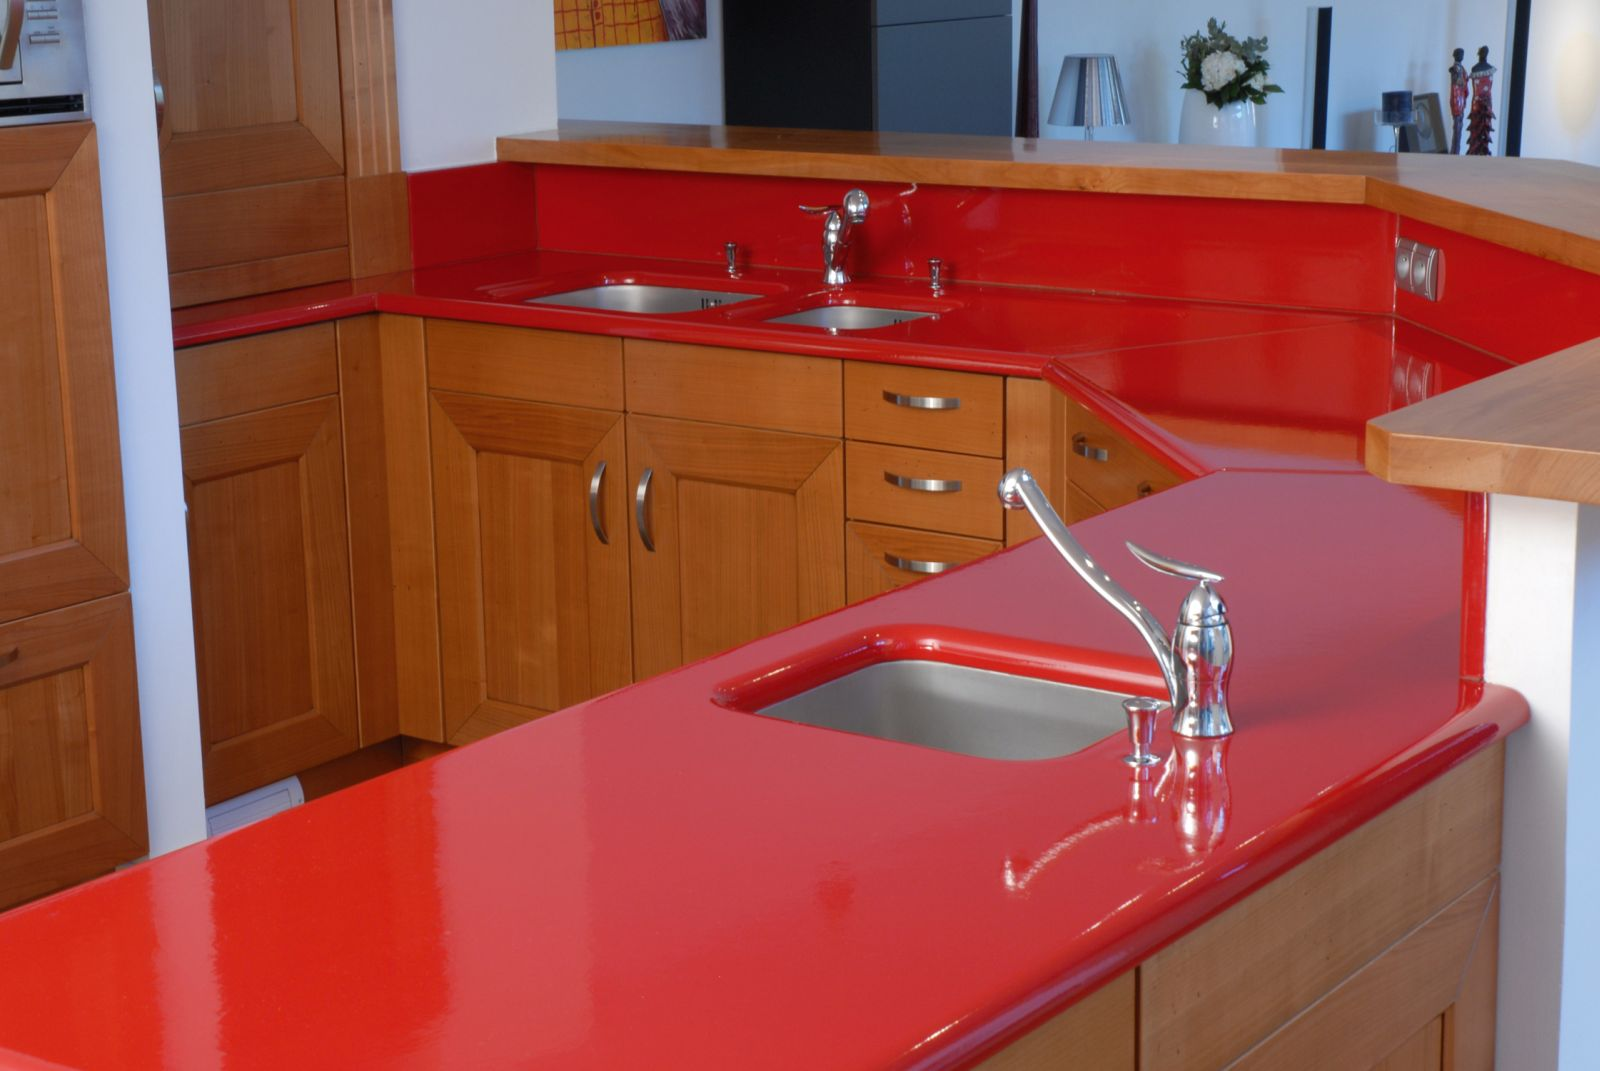 worktop ideas granite kitchen for surface tops best countertops options cost quartz countertop design materials solid black